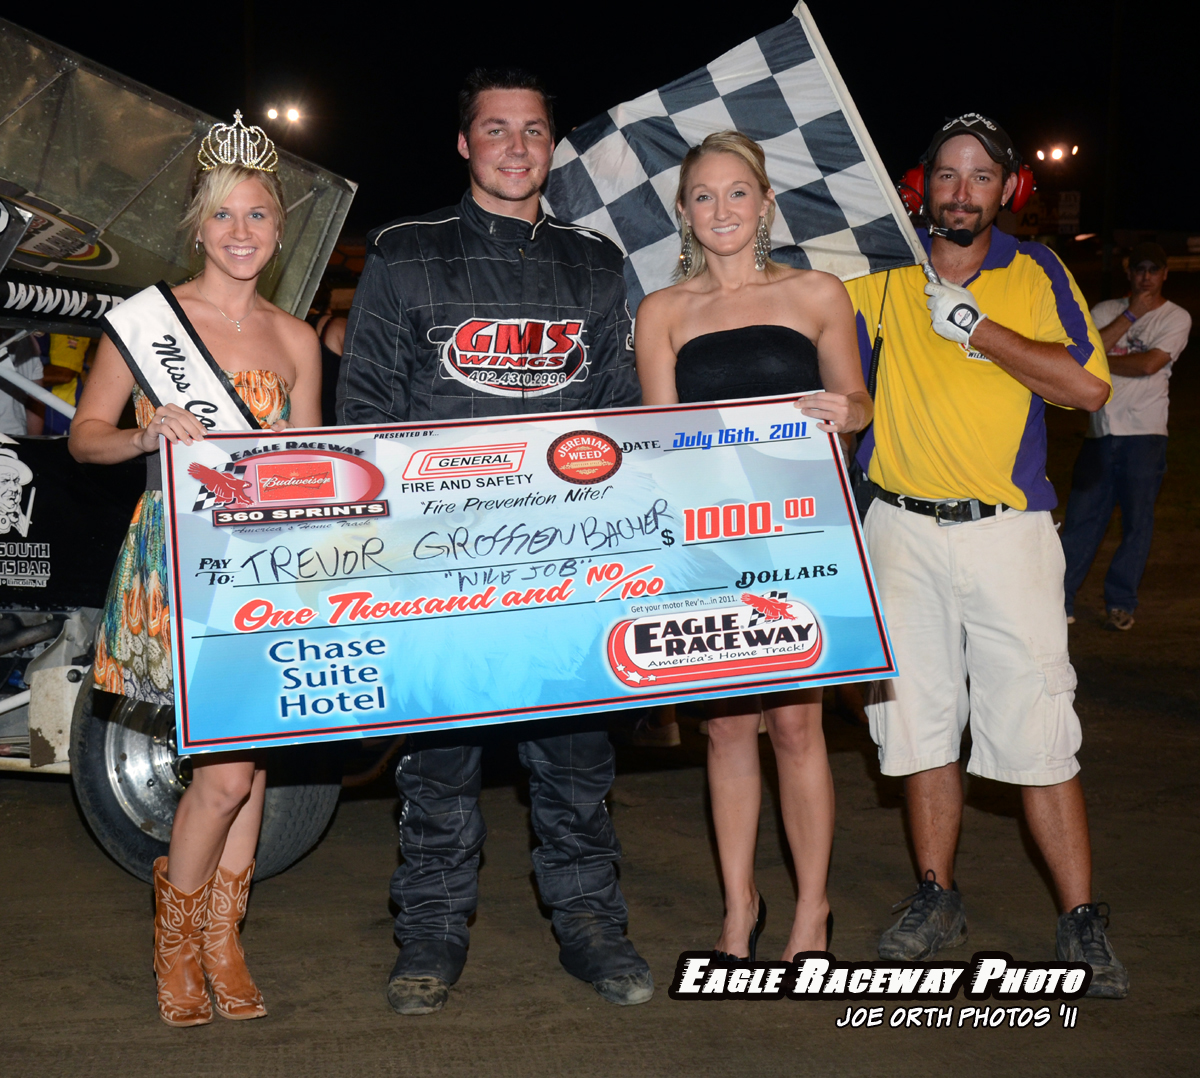 eagle-07-16-11-trevor-grossenbacher-with-miss-cass-county-deanne-kathol-and-2010-miss-nebraska-cup-finalist-jessica-spanel-and-flagman-billy-lloyd